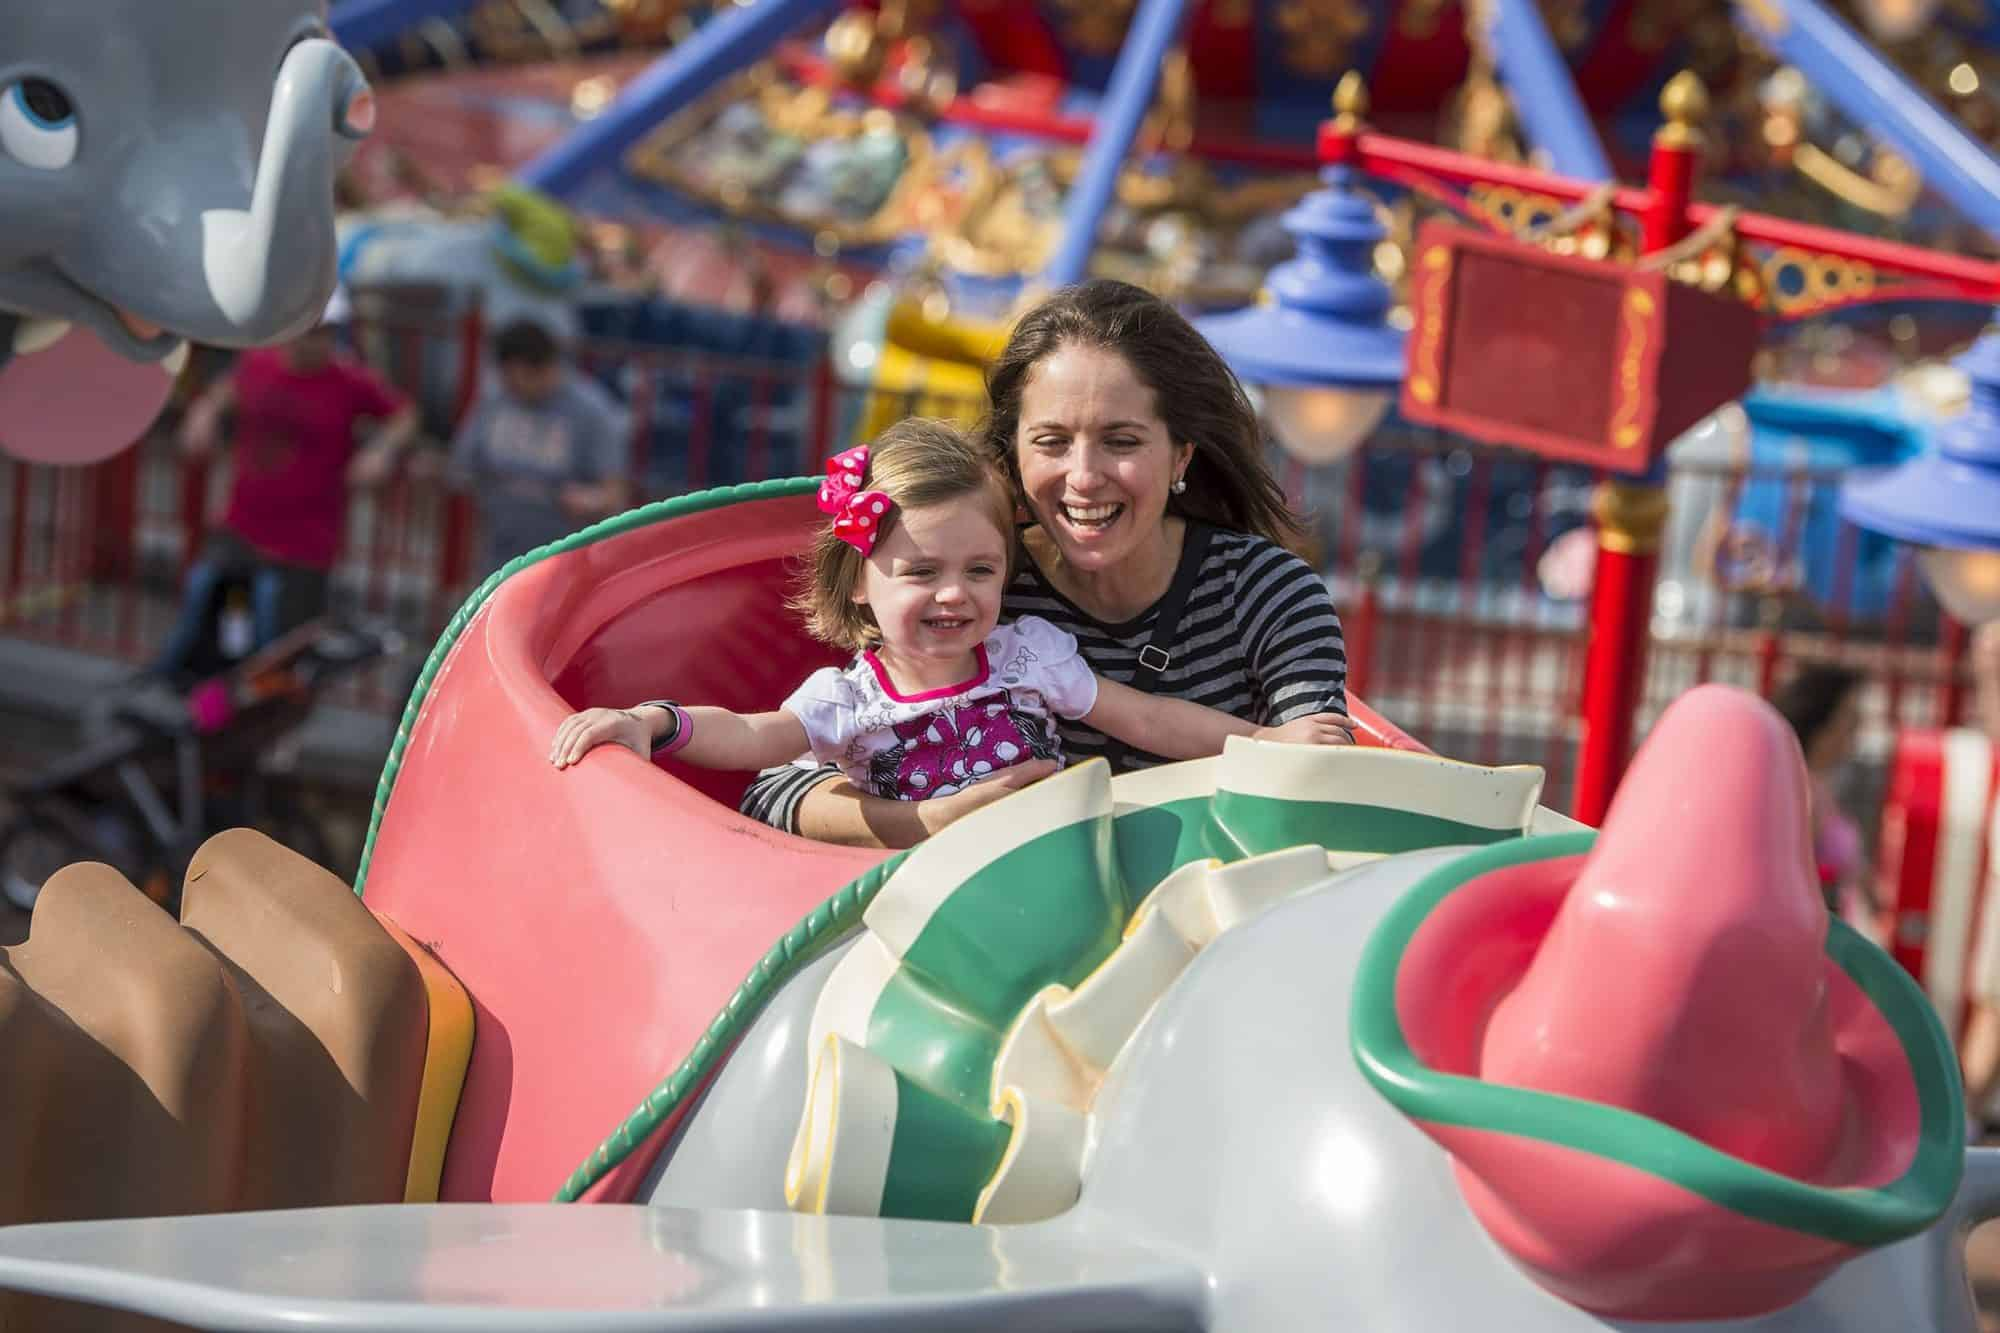 Planning a Trip to Disney World – Your Ultimate Disney World Planning Guide